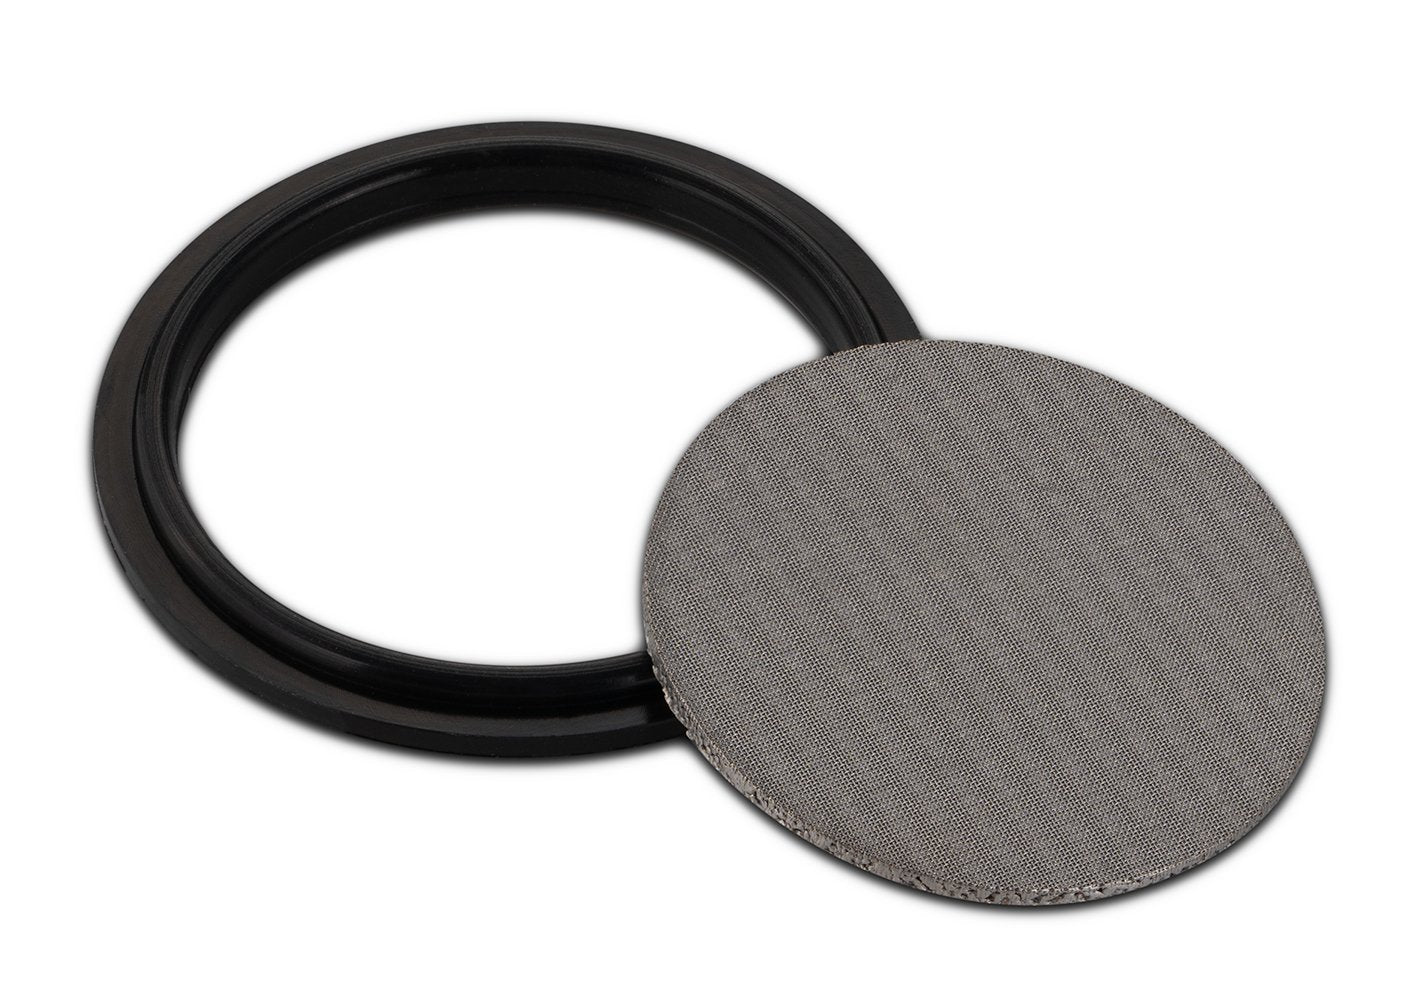 "316L Stainless Dutch Weave Sintered Filter Disk 1 micron and up Shop All Categories BVV 1.5"" 1 Micron"